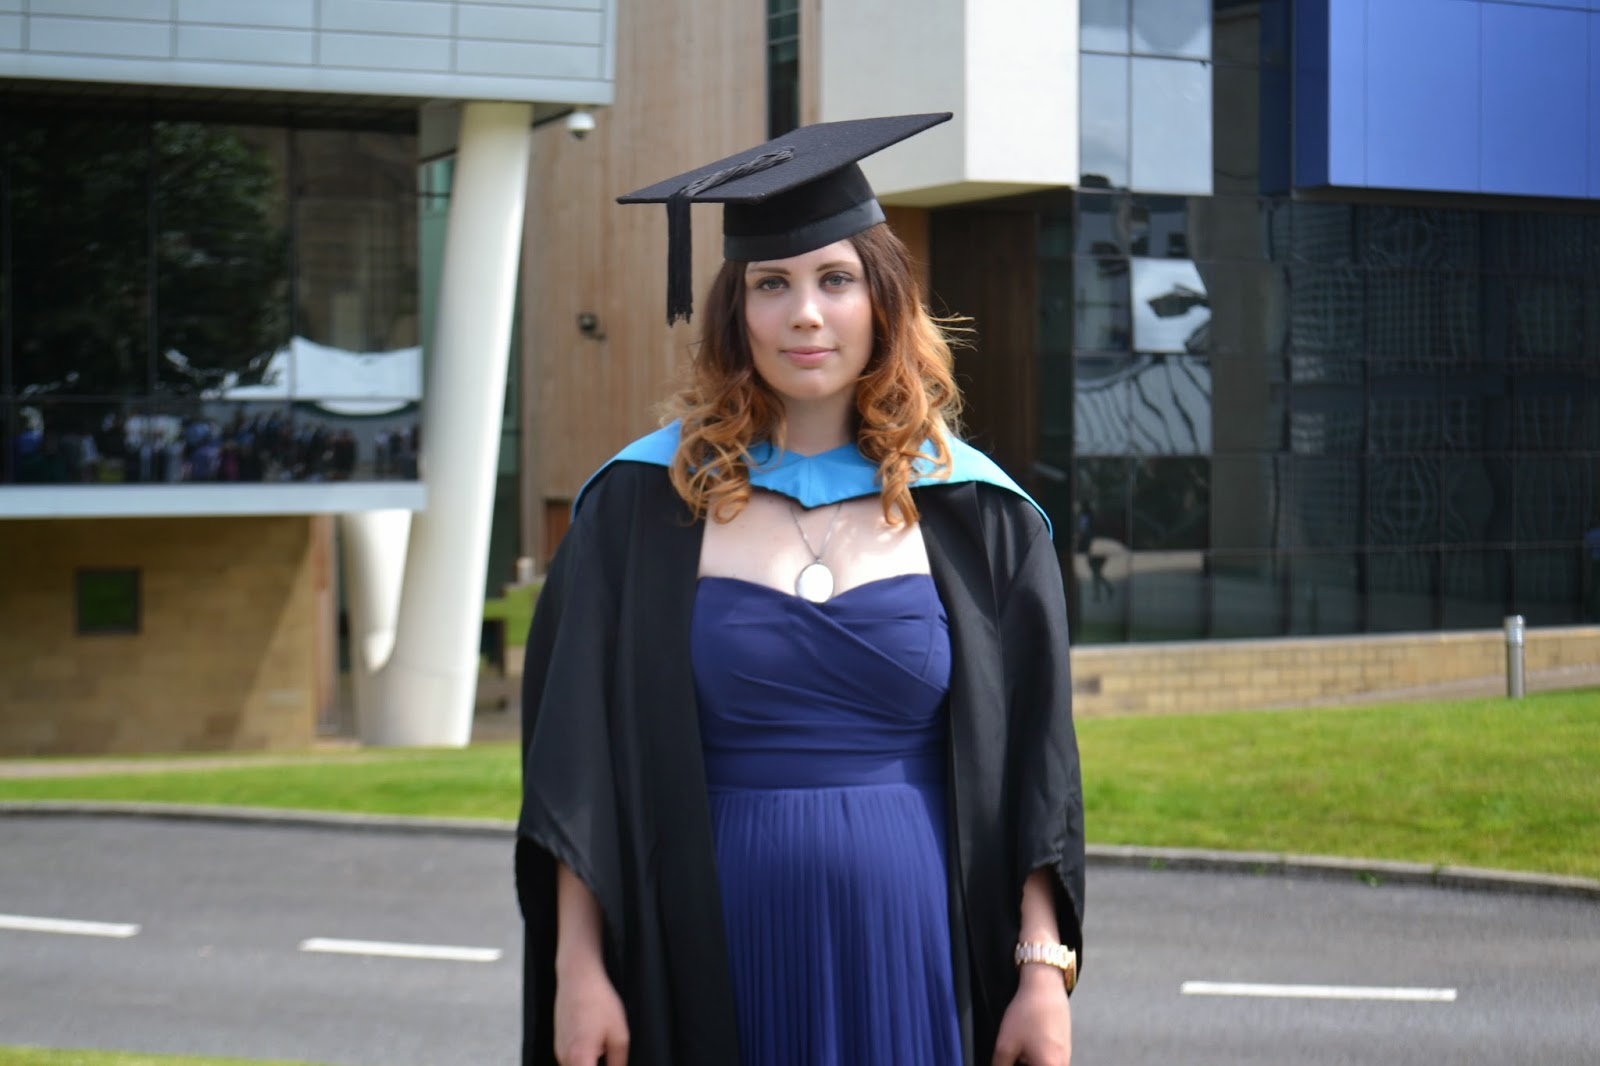 a uk lifestyle blogger graduation day i have never thought of myself as academic and i have always been one of those that has struggled essay writing and assignments but the university